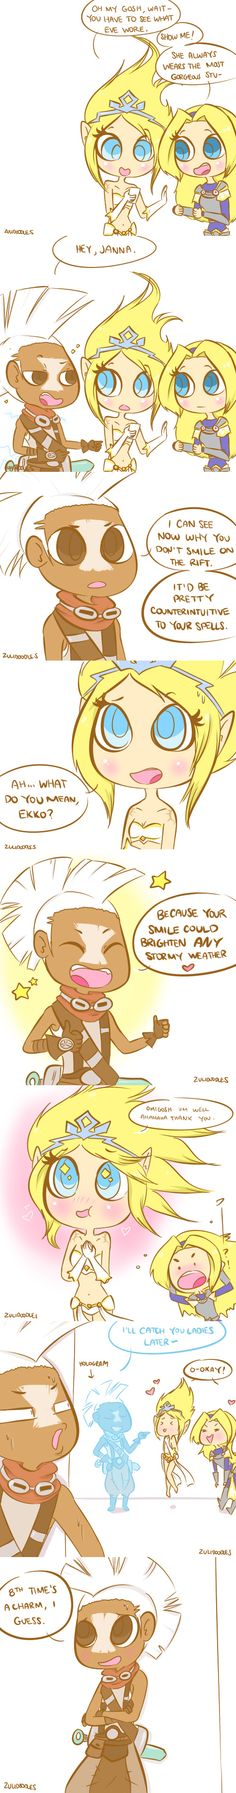 Ekko Pick Up Line - with Janna and Lux